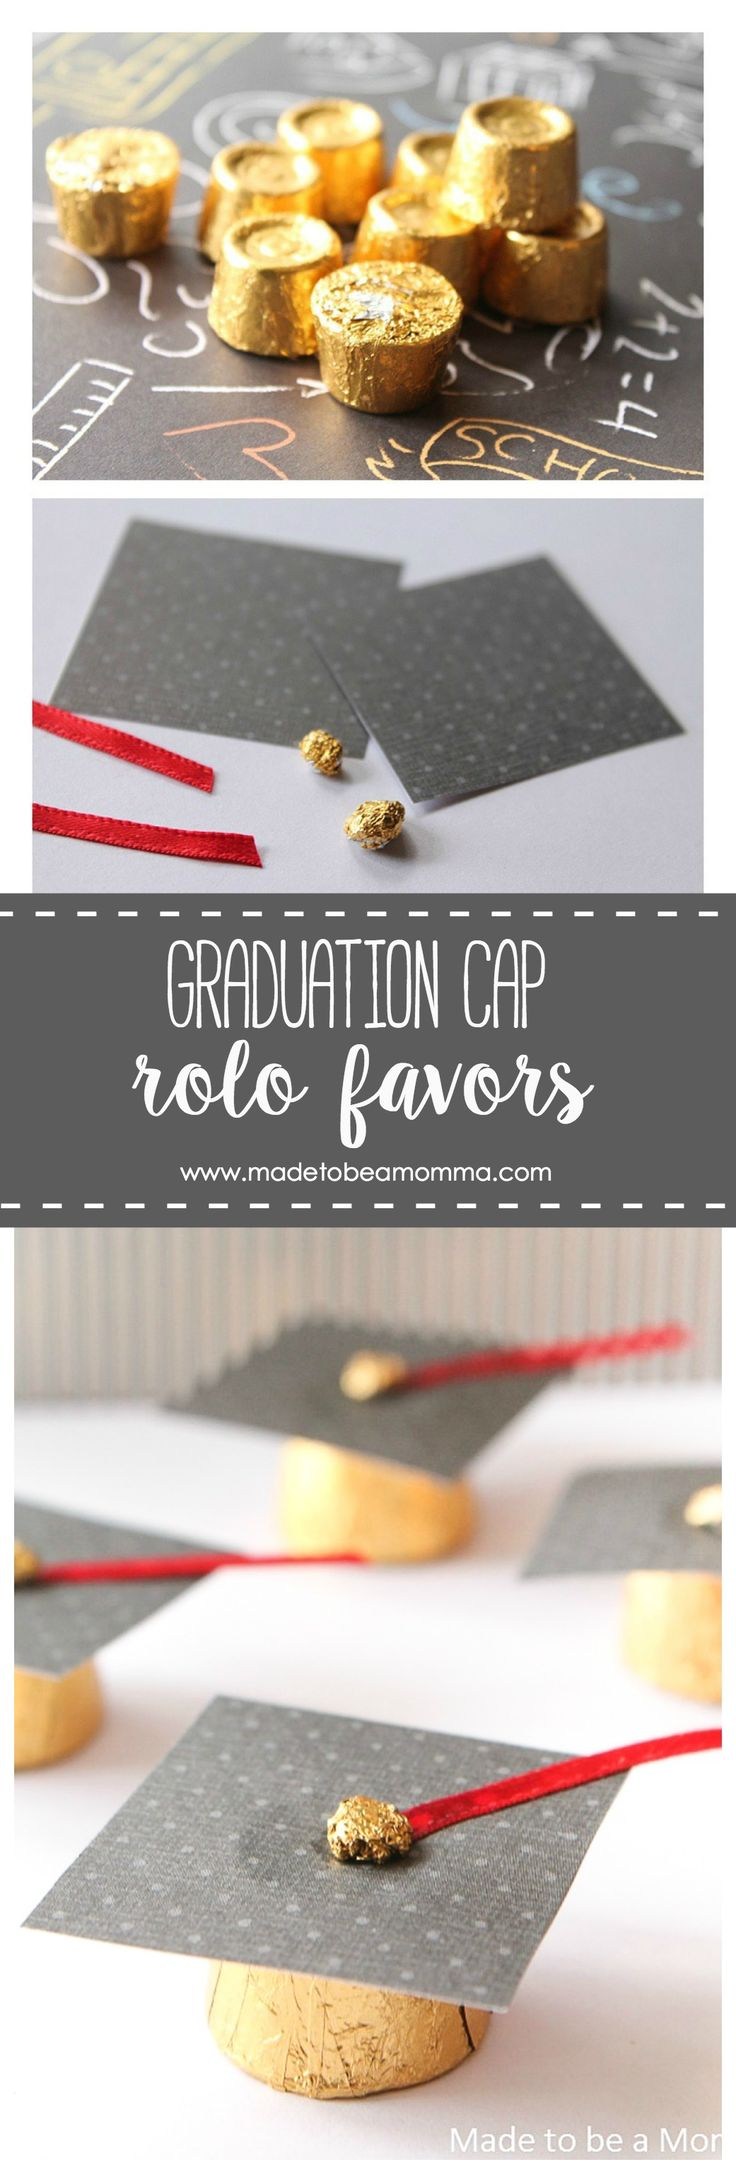 Graduation Cap Rolo Favors: a simple favor idea for your graduates party.